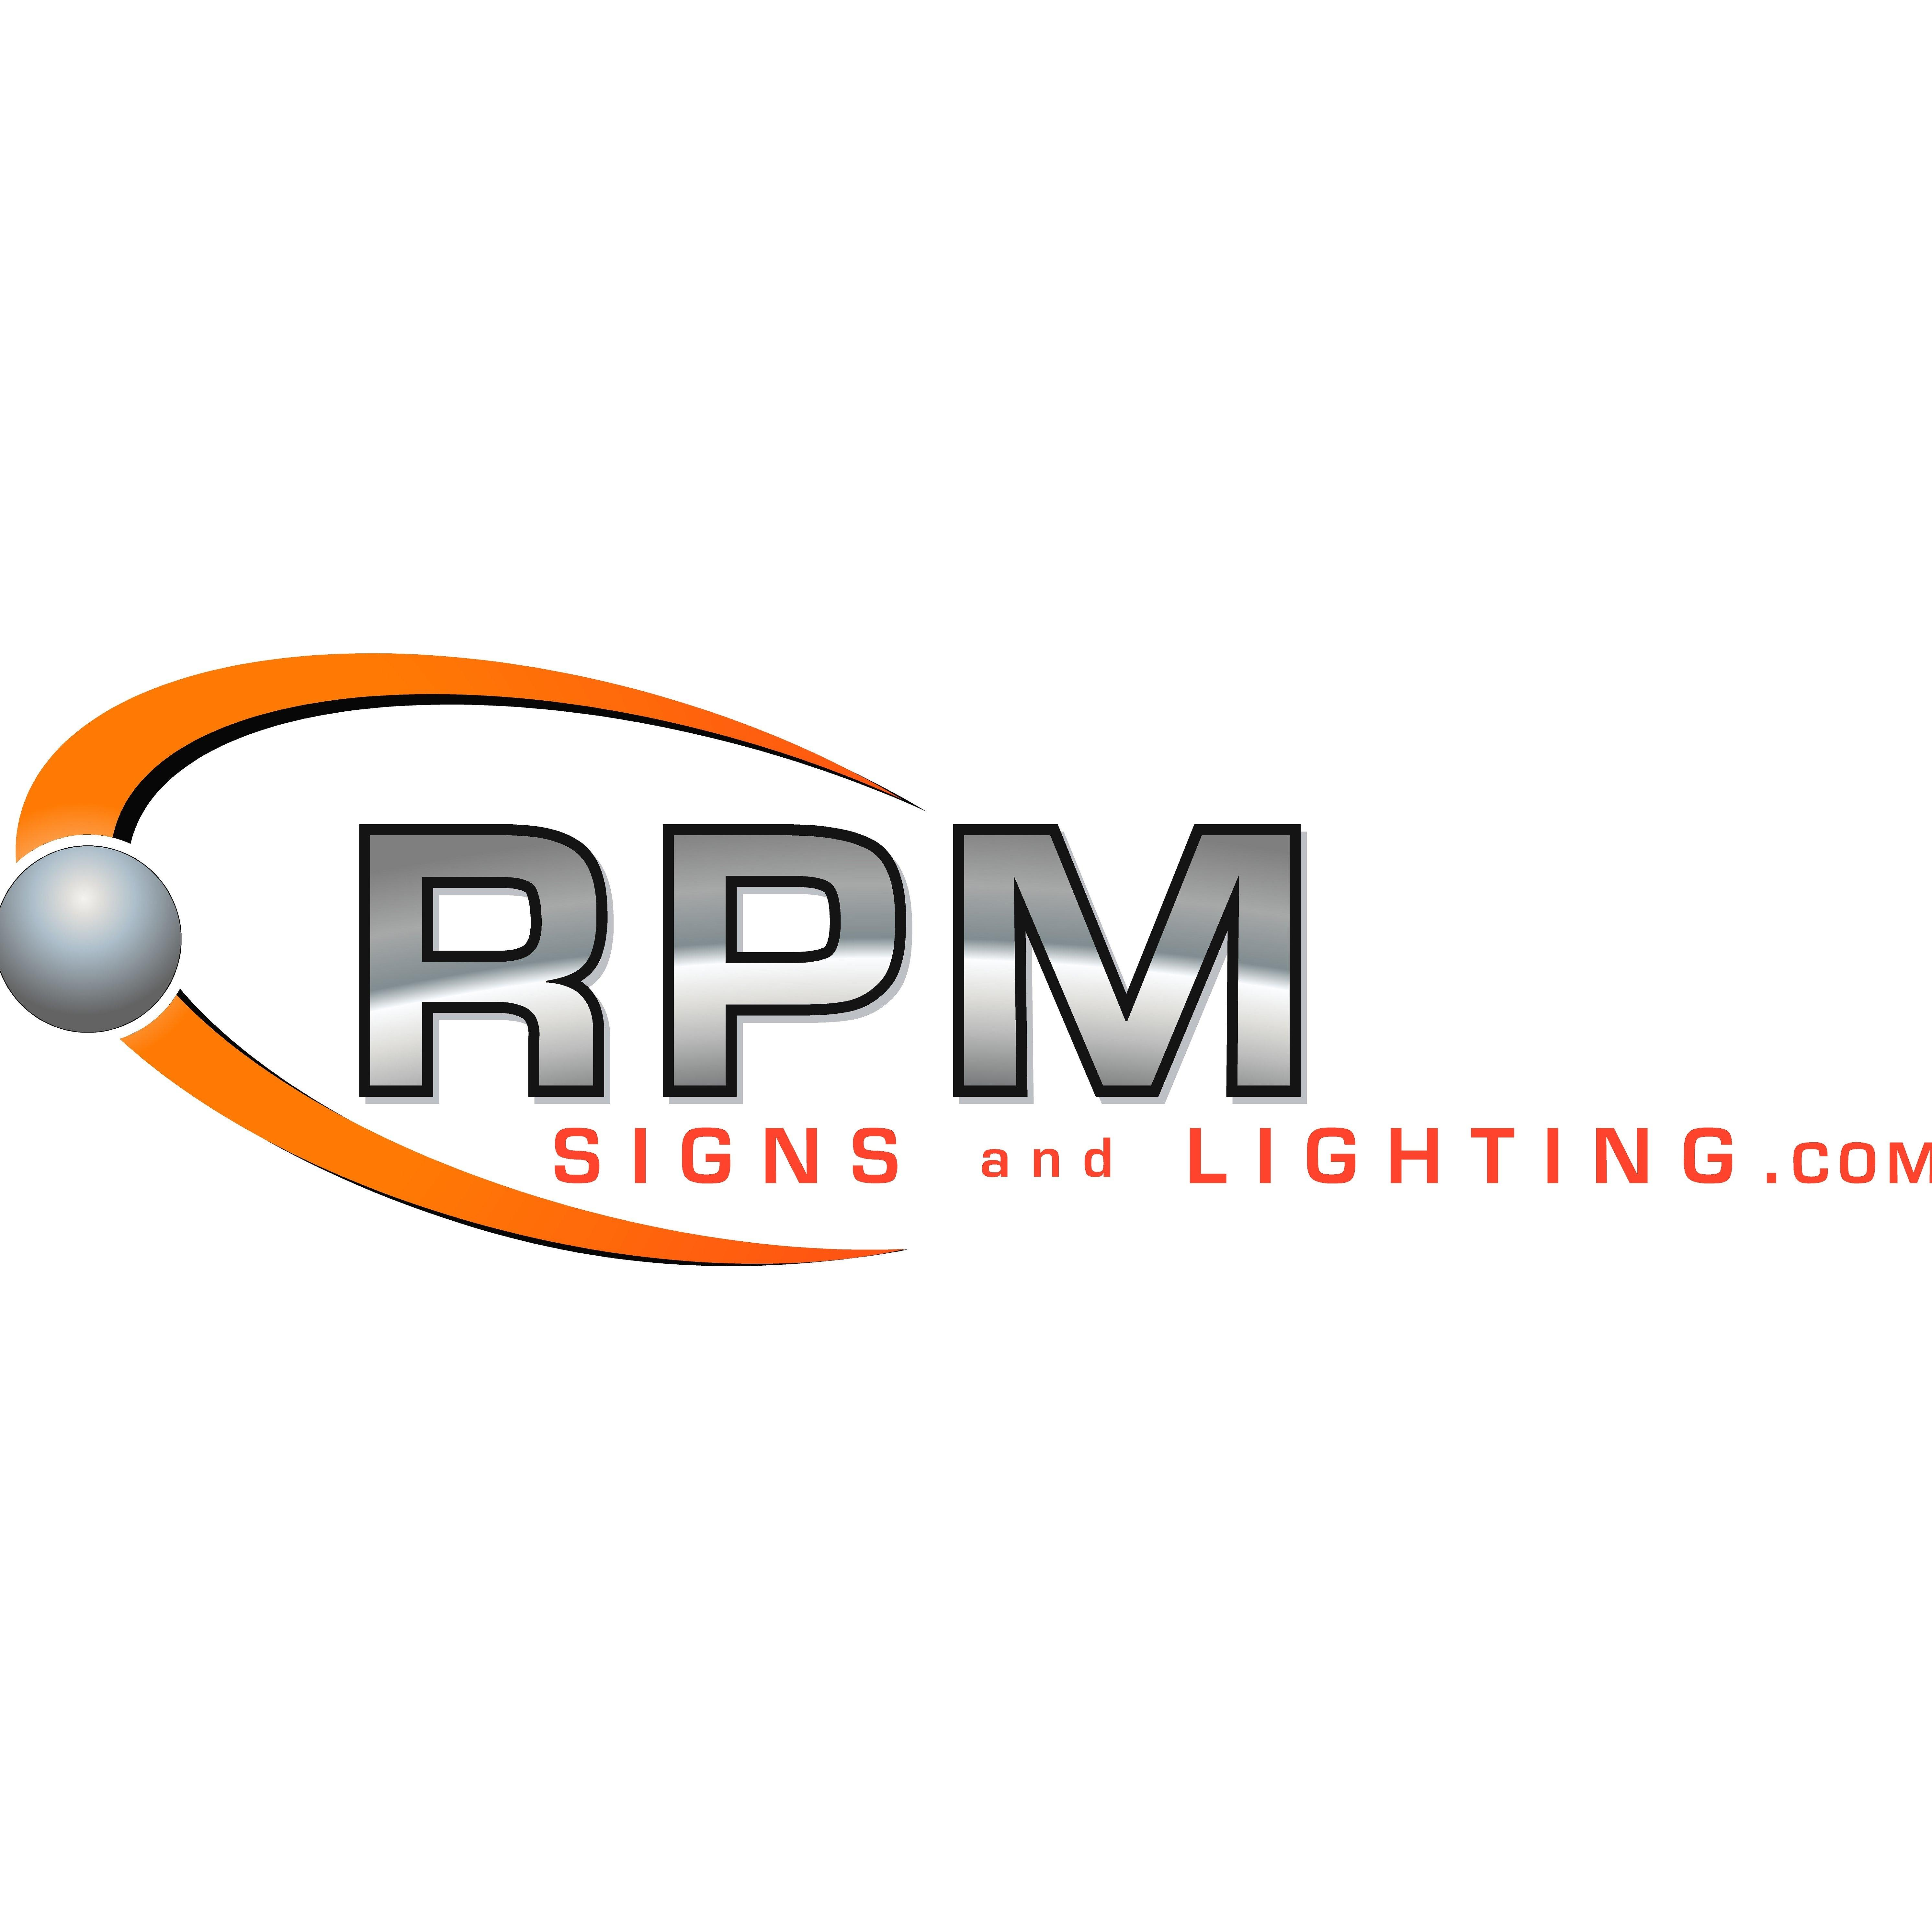 RPM Signs and Lighting image 0